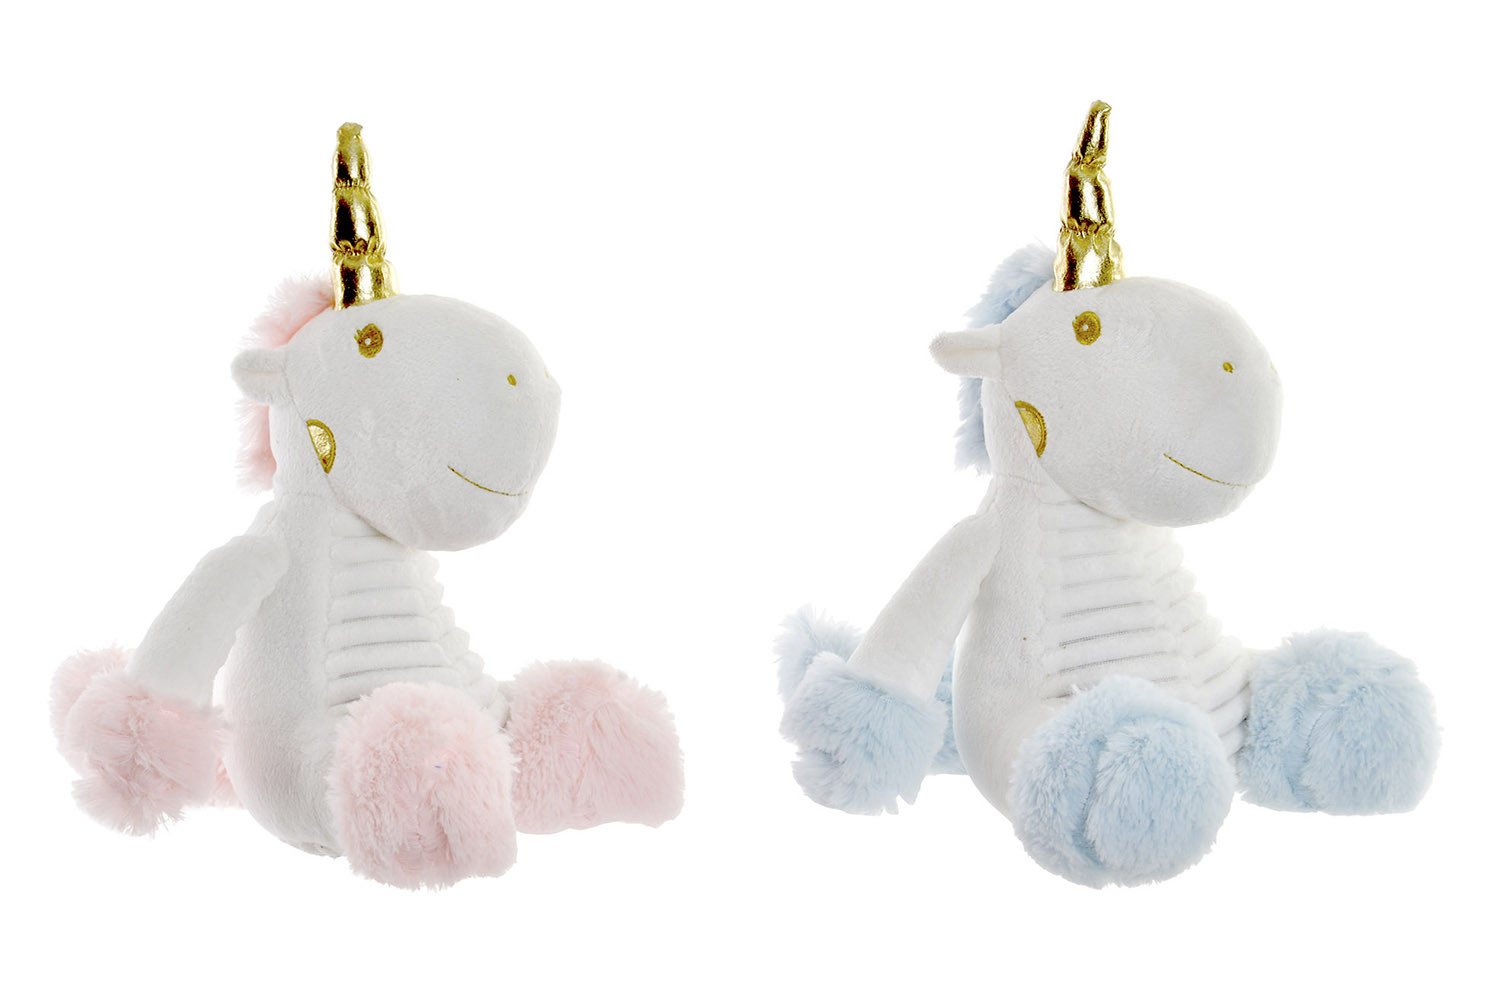 Sujetapuertas Decorative Unicorn, made in Polyester. Design Baby style Fantasy (22cm X 29cm X 20cm) - Home and More